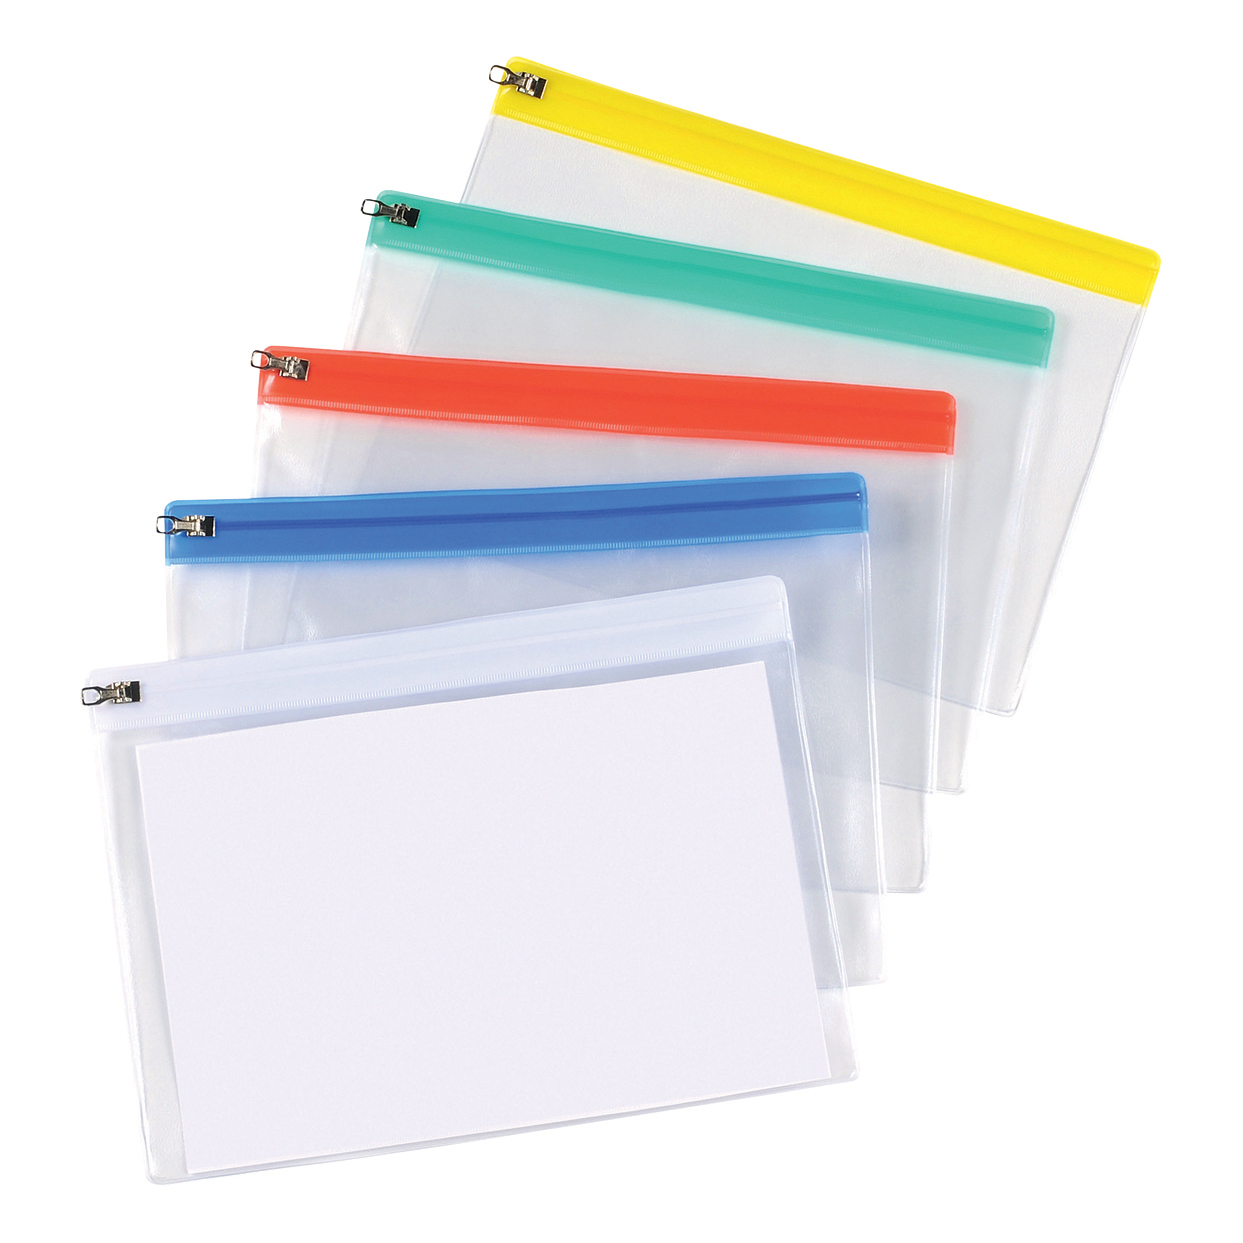 Zip Bags 5 Star Office Zip Filing Bags Clear Front with Coloured Seal A5 Assorted Pack 30